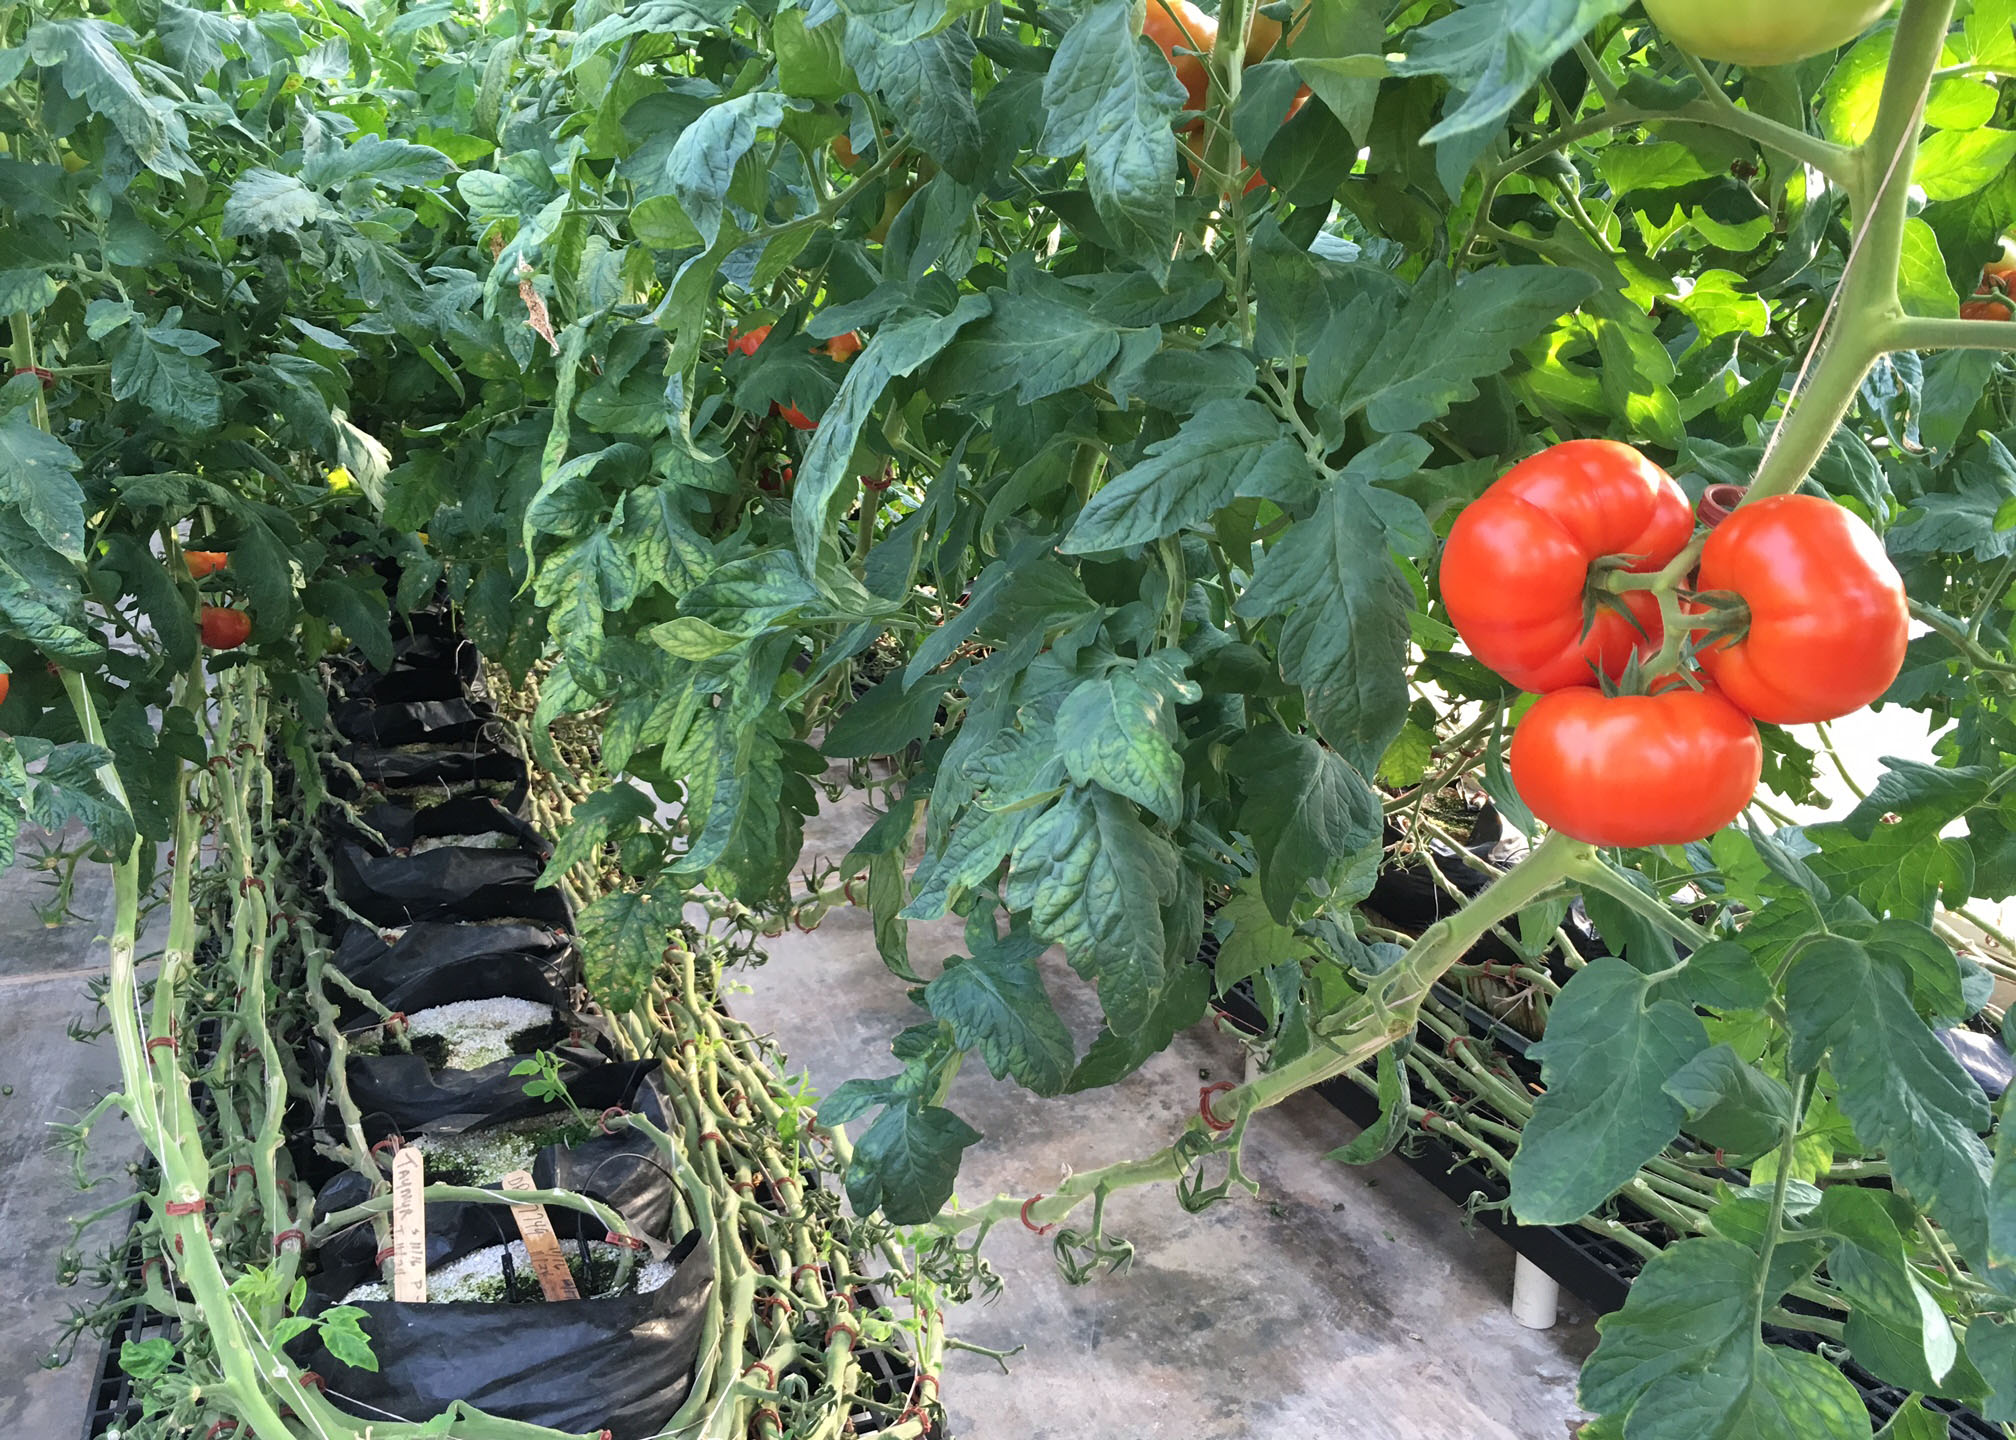 Impact of Salinity Stress Using Recycled Potting Media in Greenhouse Tomato Production